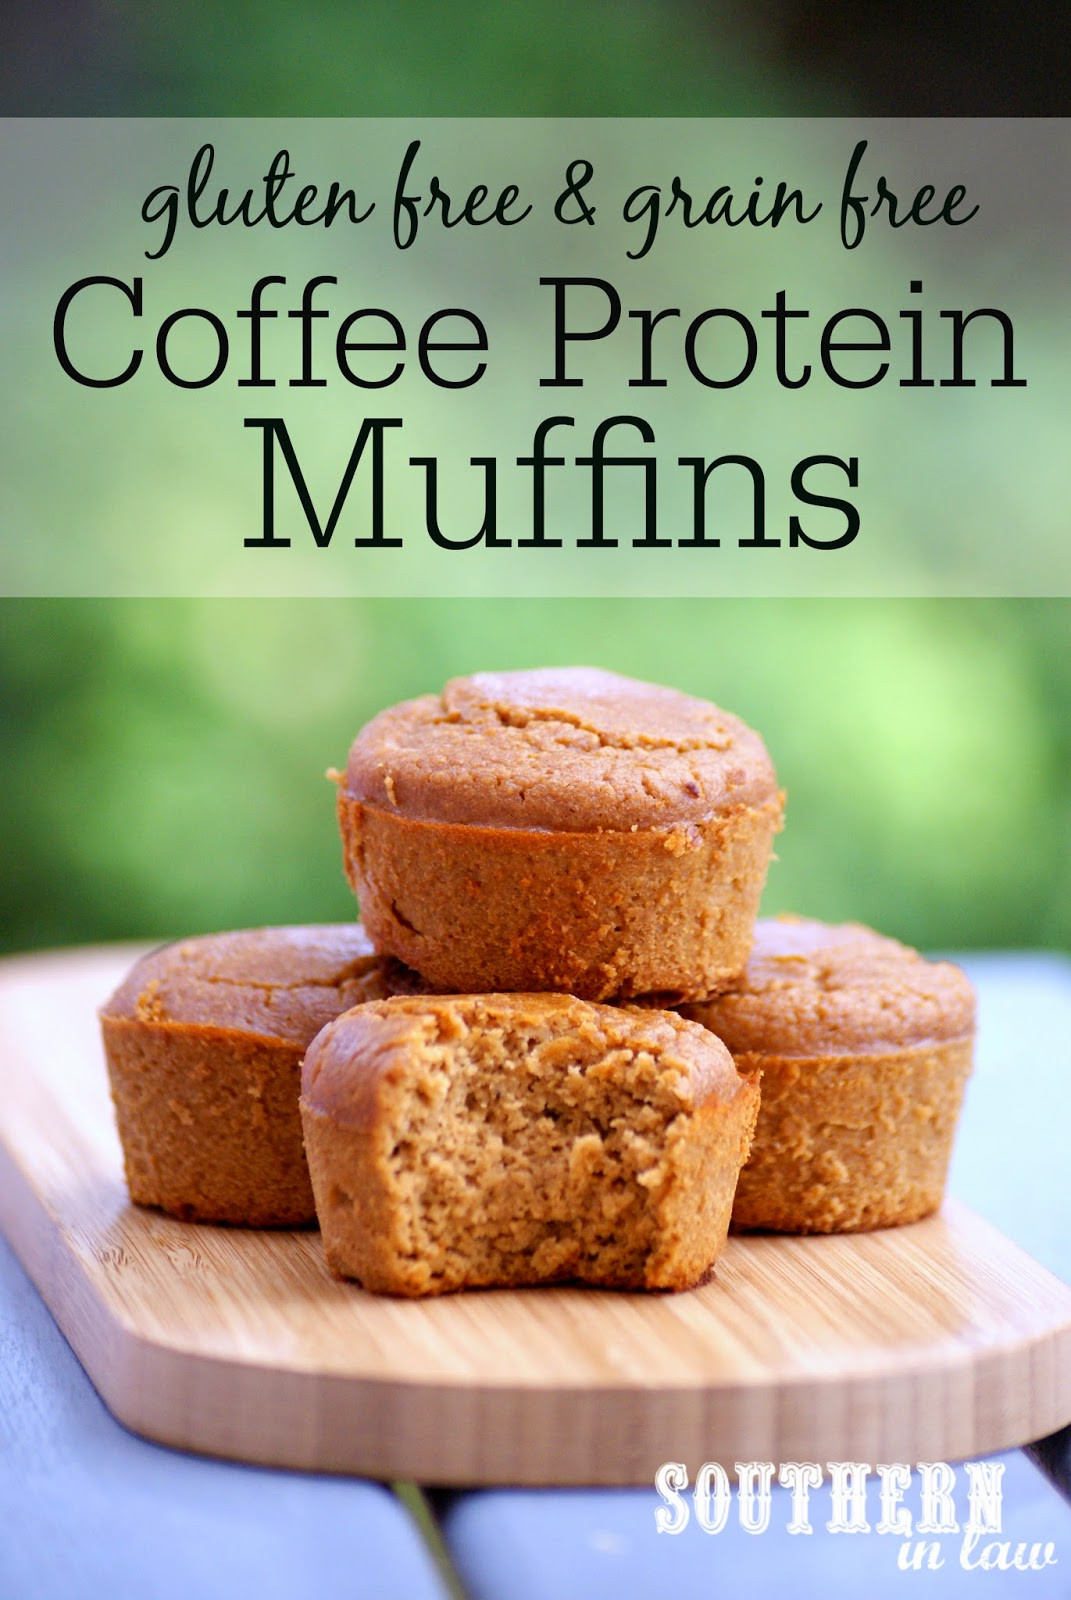 Low Cholesterol Low Sugar Recipes  Southern In Law Recipe Healthy Coffee Protein Muffins